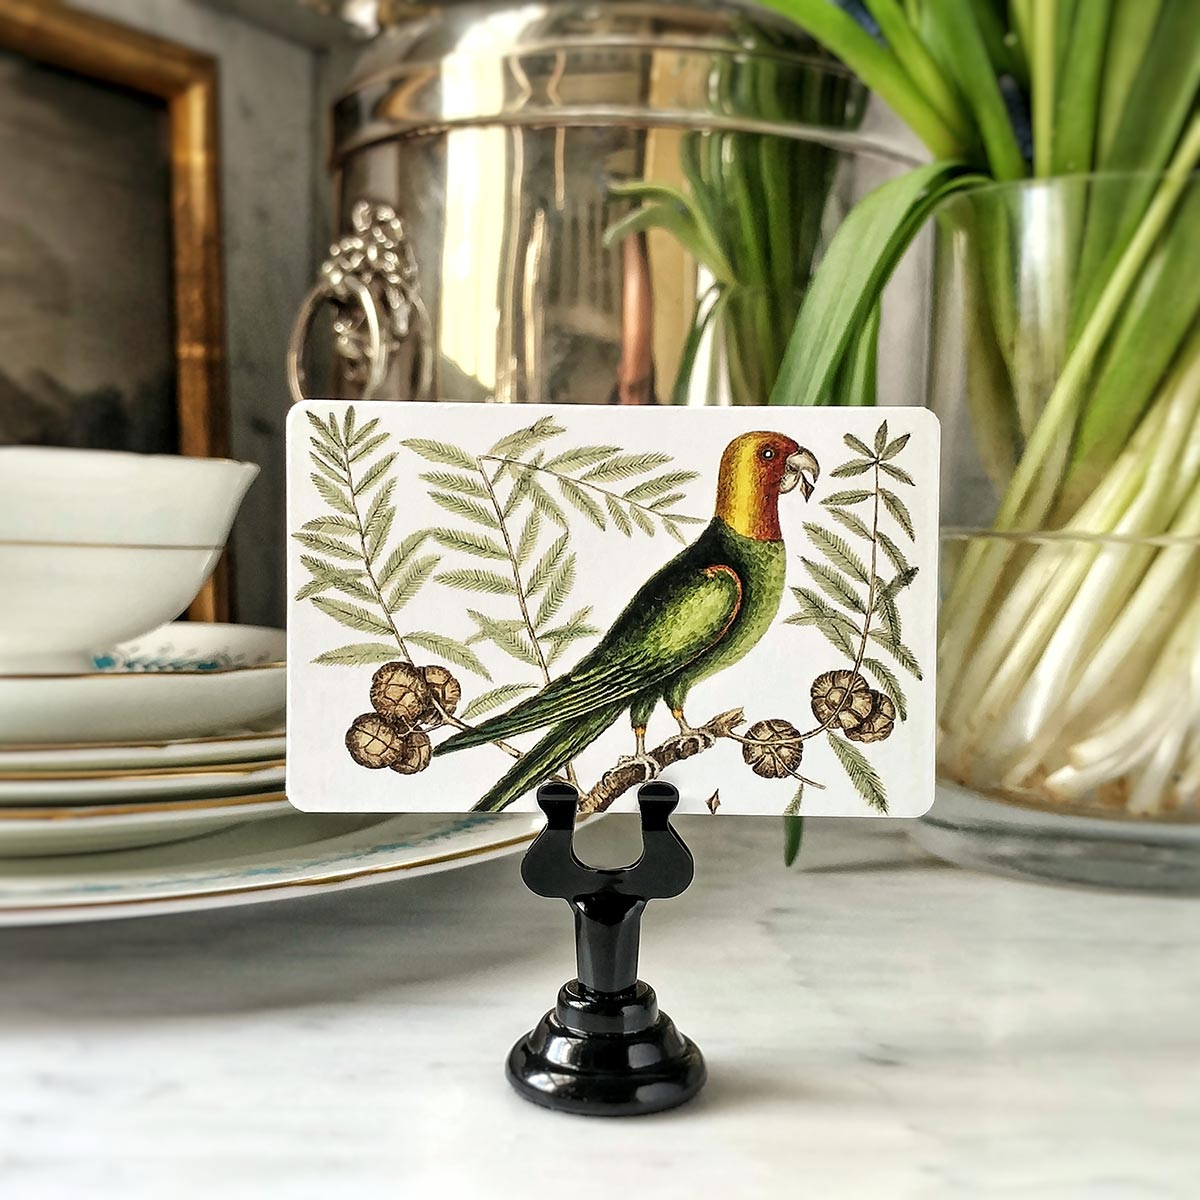 The Punctilious Mr. P's 'Parakeets' place cards